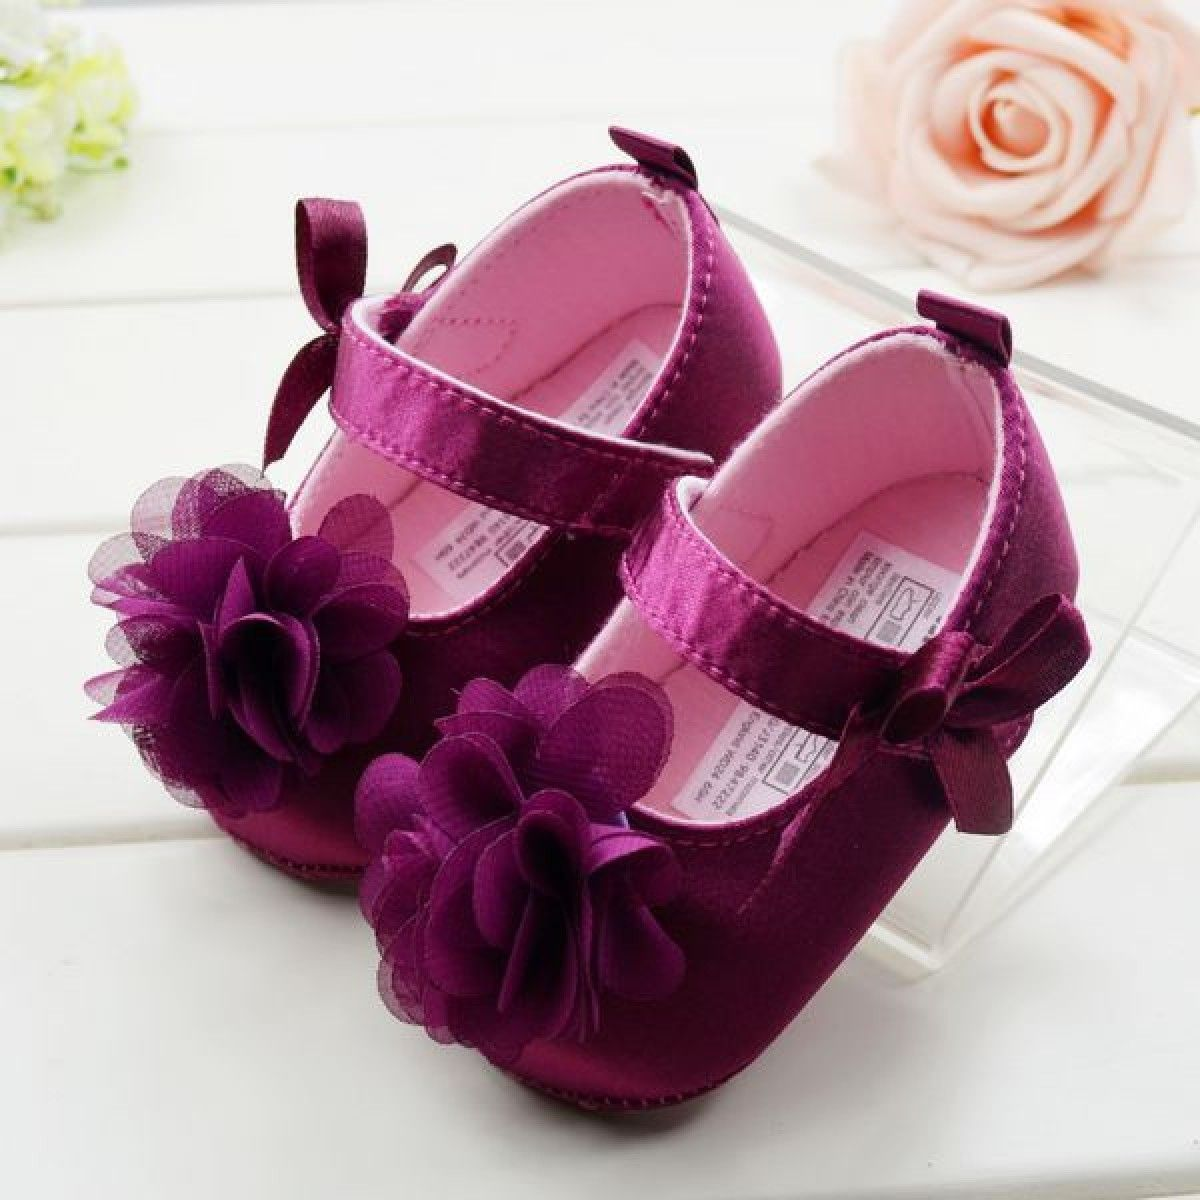 shoes baby girl morado  Baby shoes, Baby girl shoes, Cute baby shoes